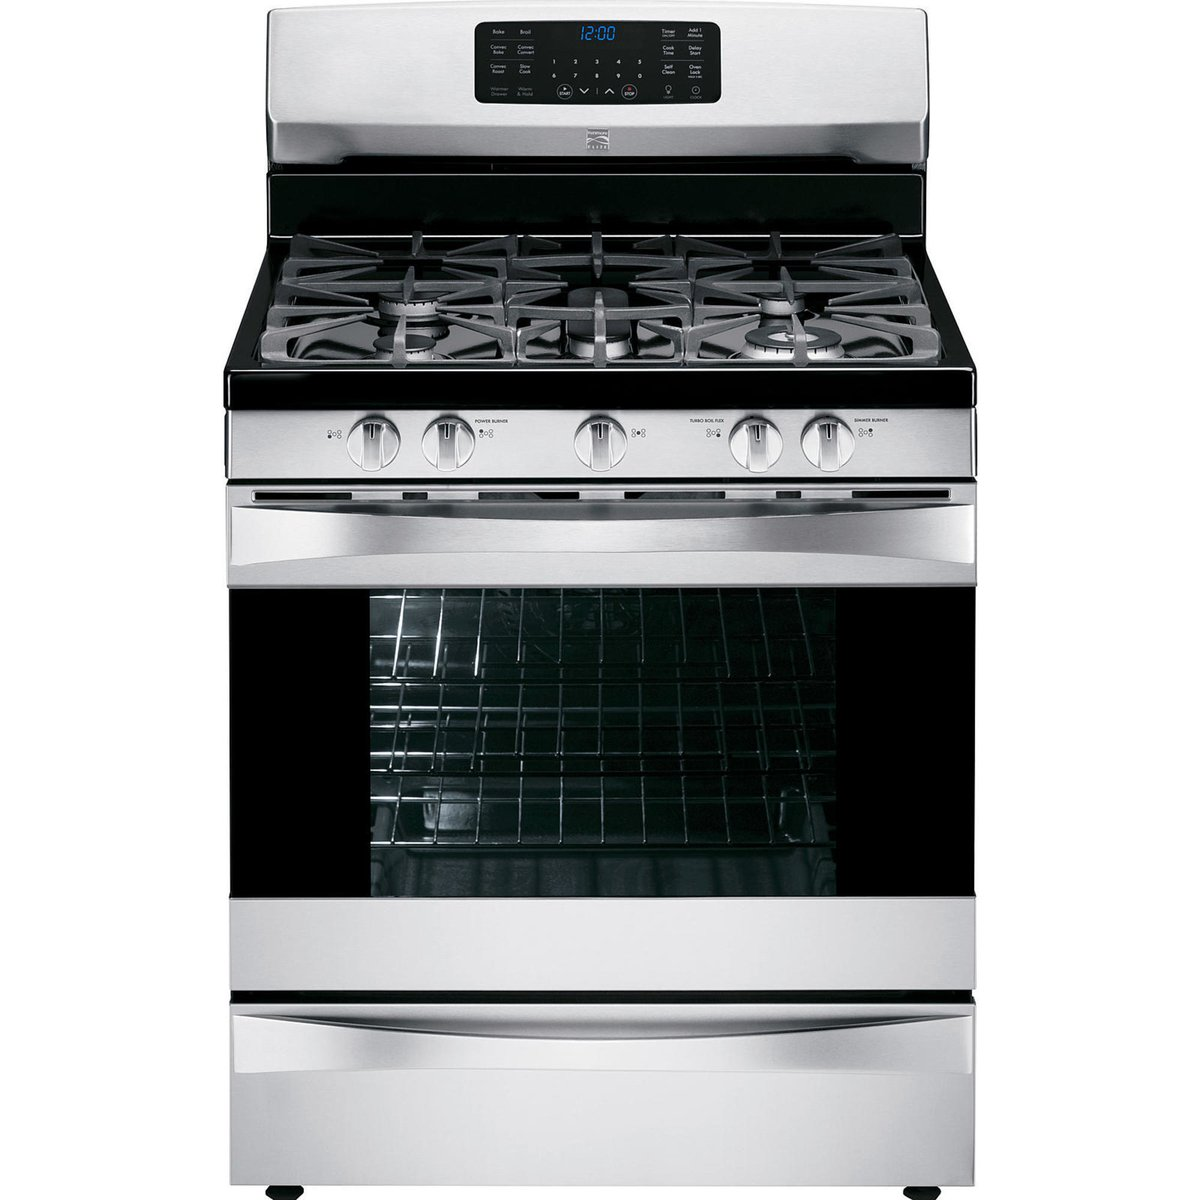 Kenmore Elite 75233 5.6 cu. ft. Gas Range with True Convection in Stainless Steel, includes delivery and hookup